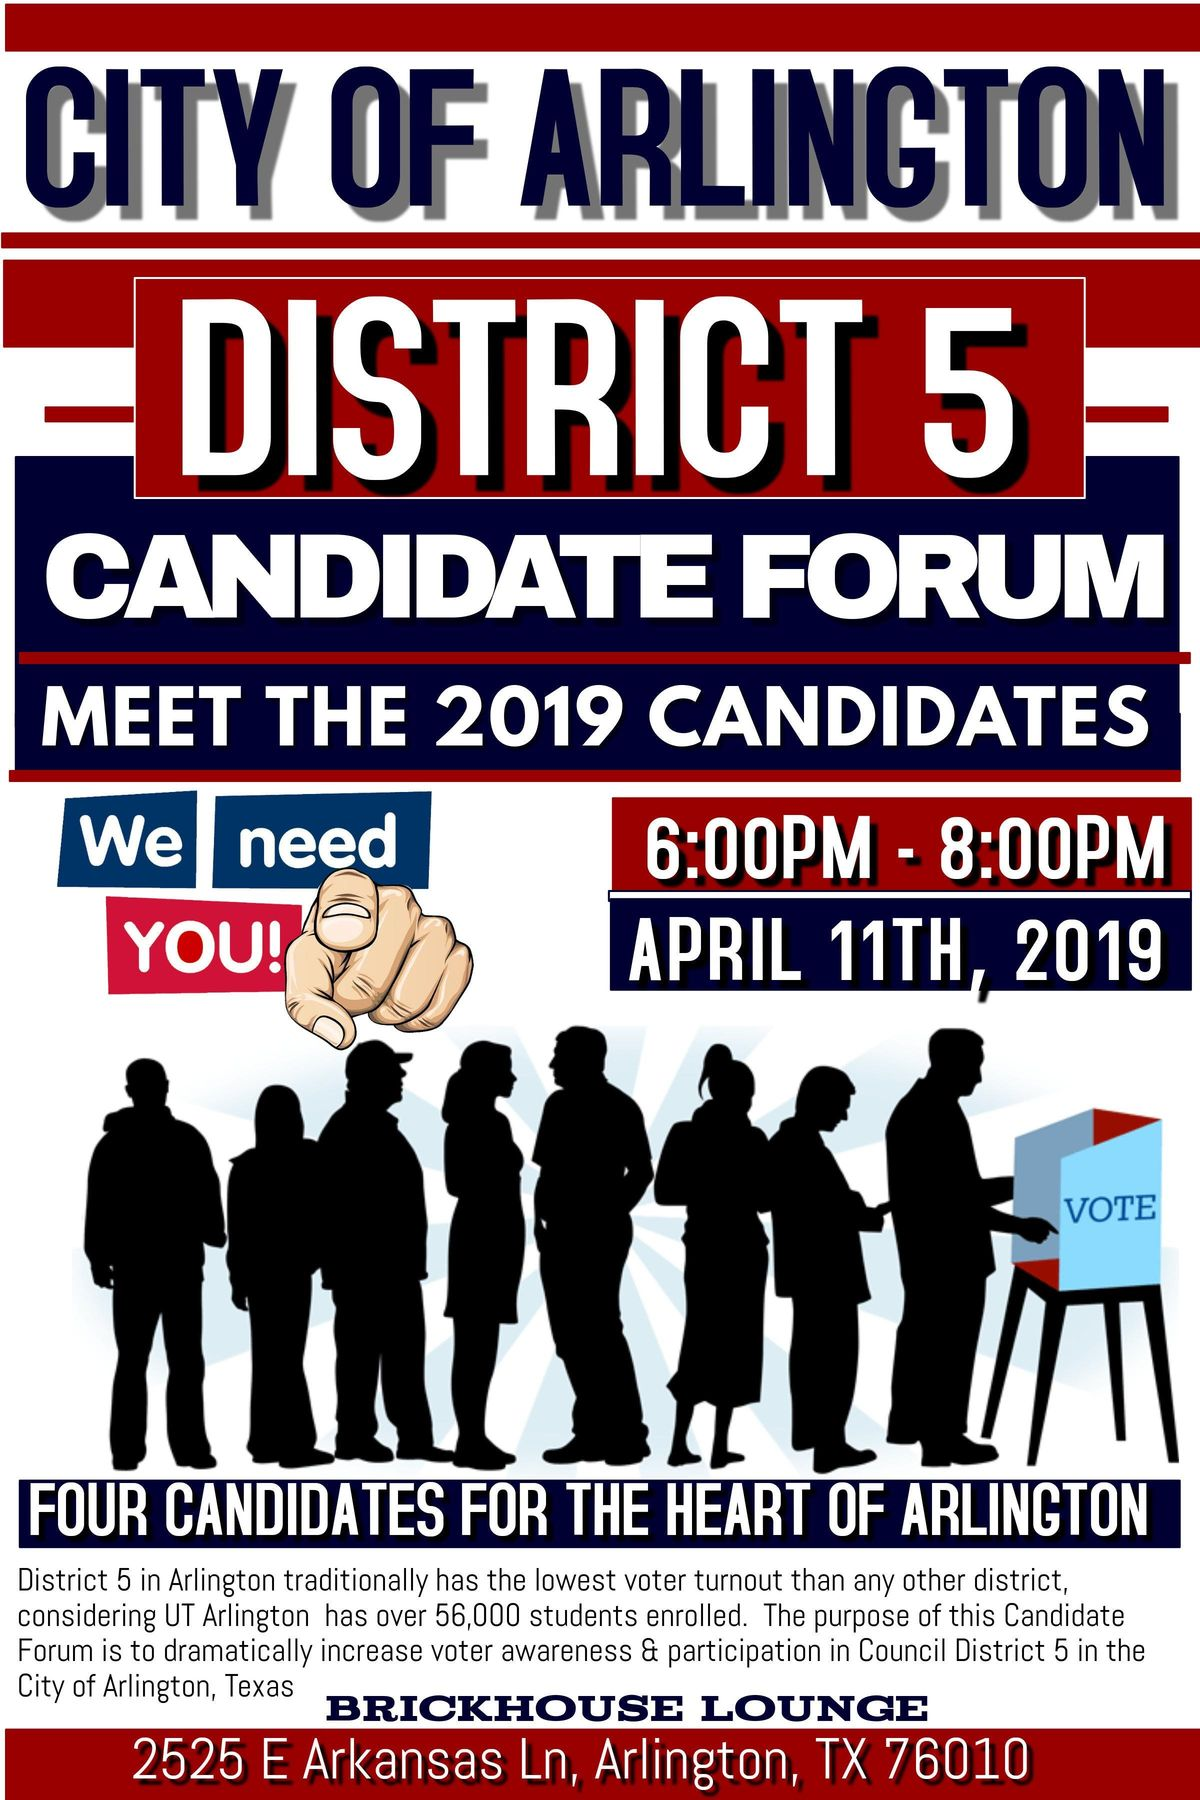 City of Arlington District 5 Candidate Forum